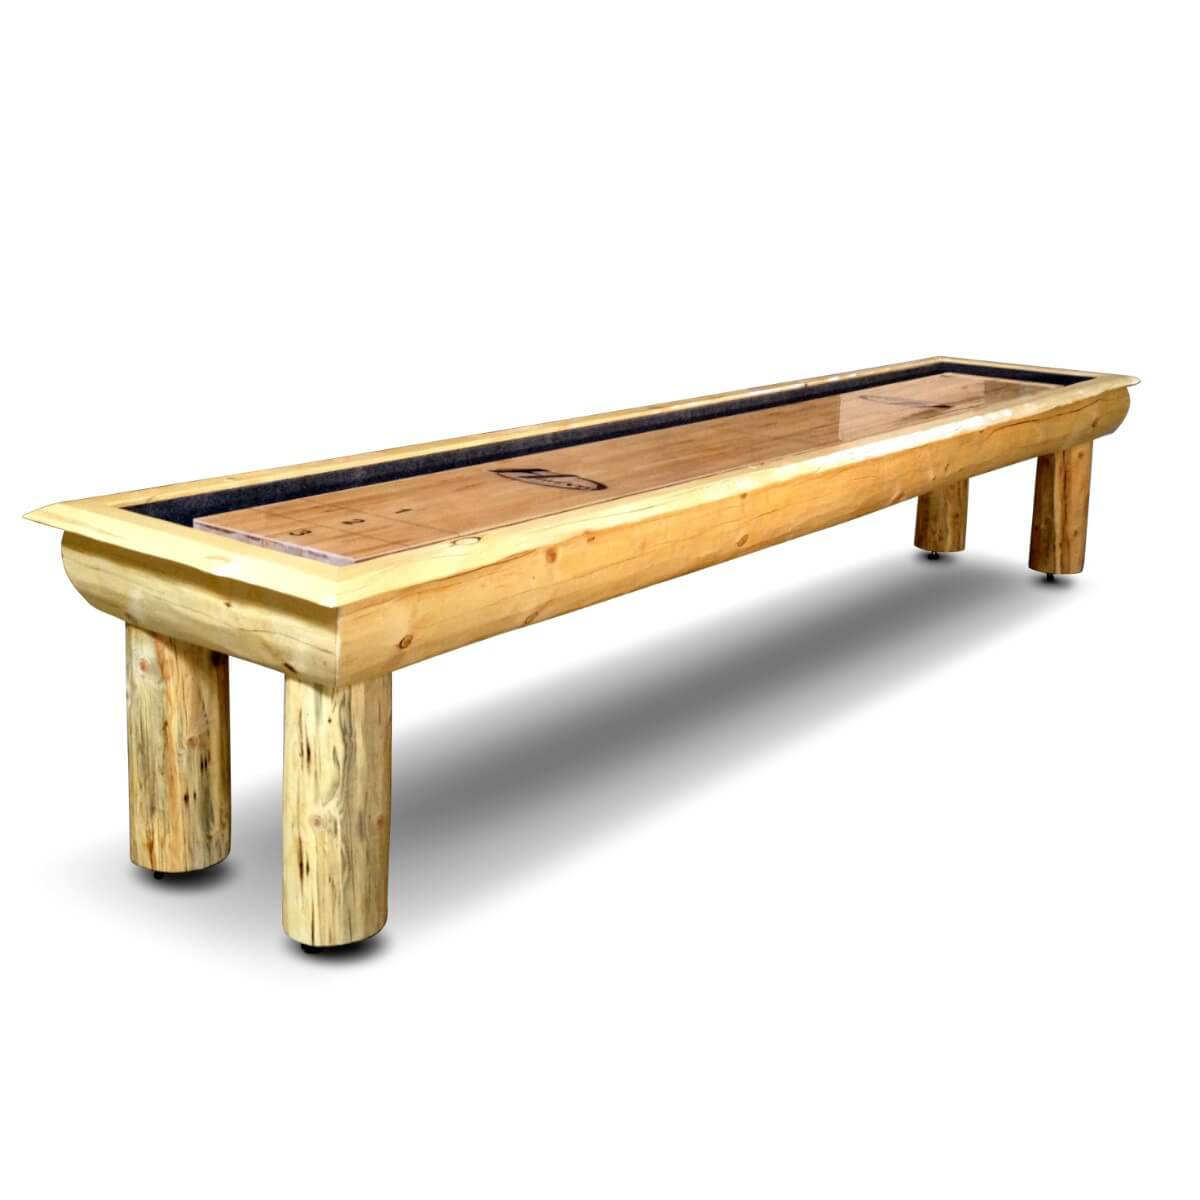 Hudson Ponderosa Shuffleboard Table 9'-22' with Custom Stain Options - Gaming Blaze